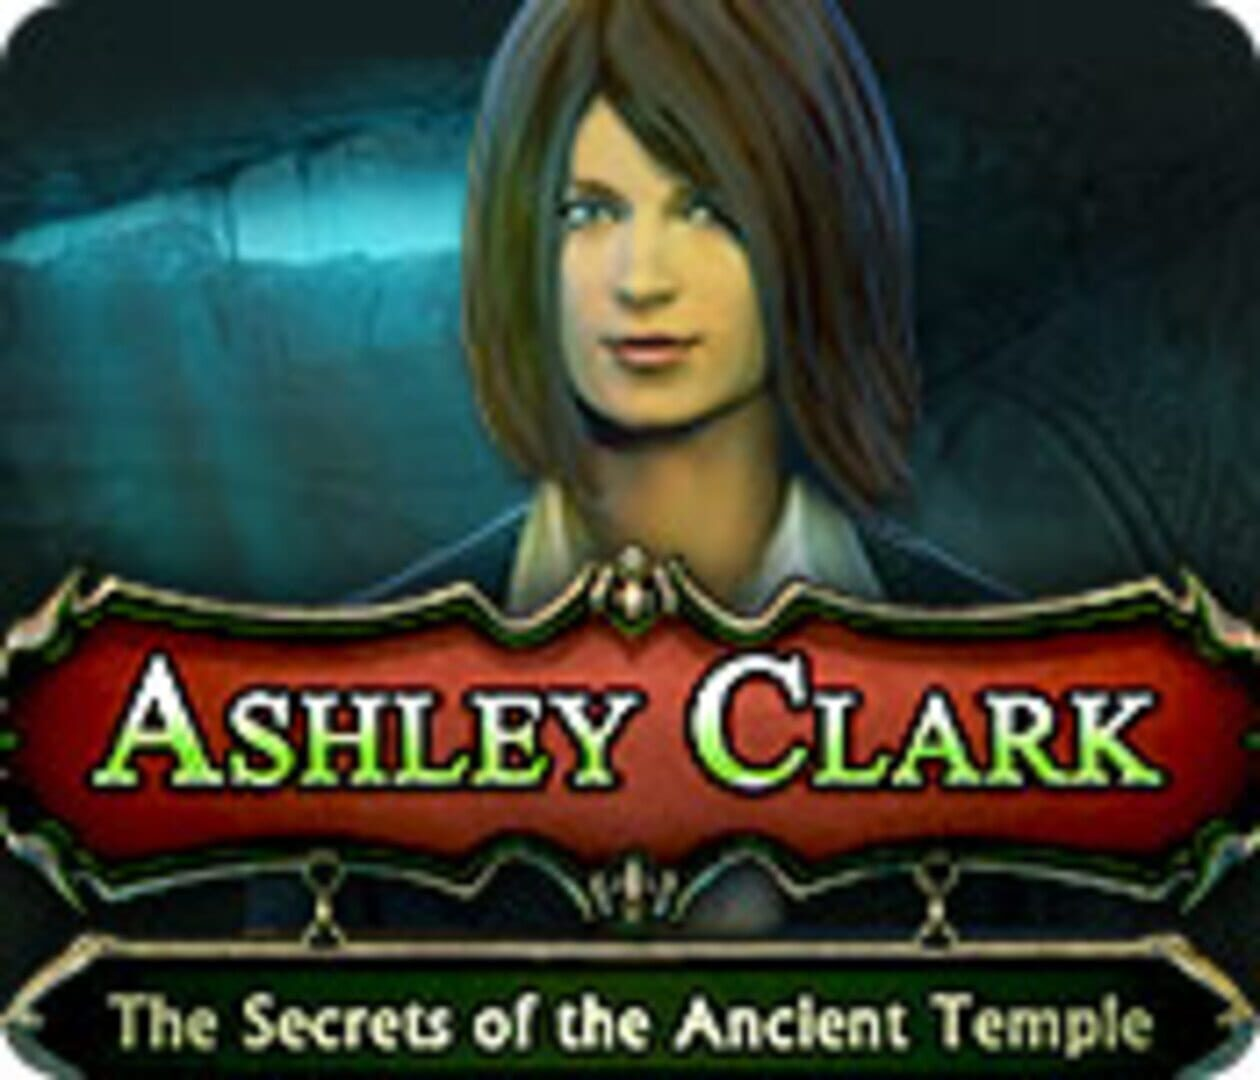 buy Ashley Clark: The Secrets of the Ancient Temple cd key for all platform